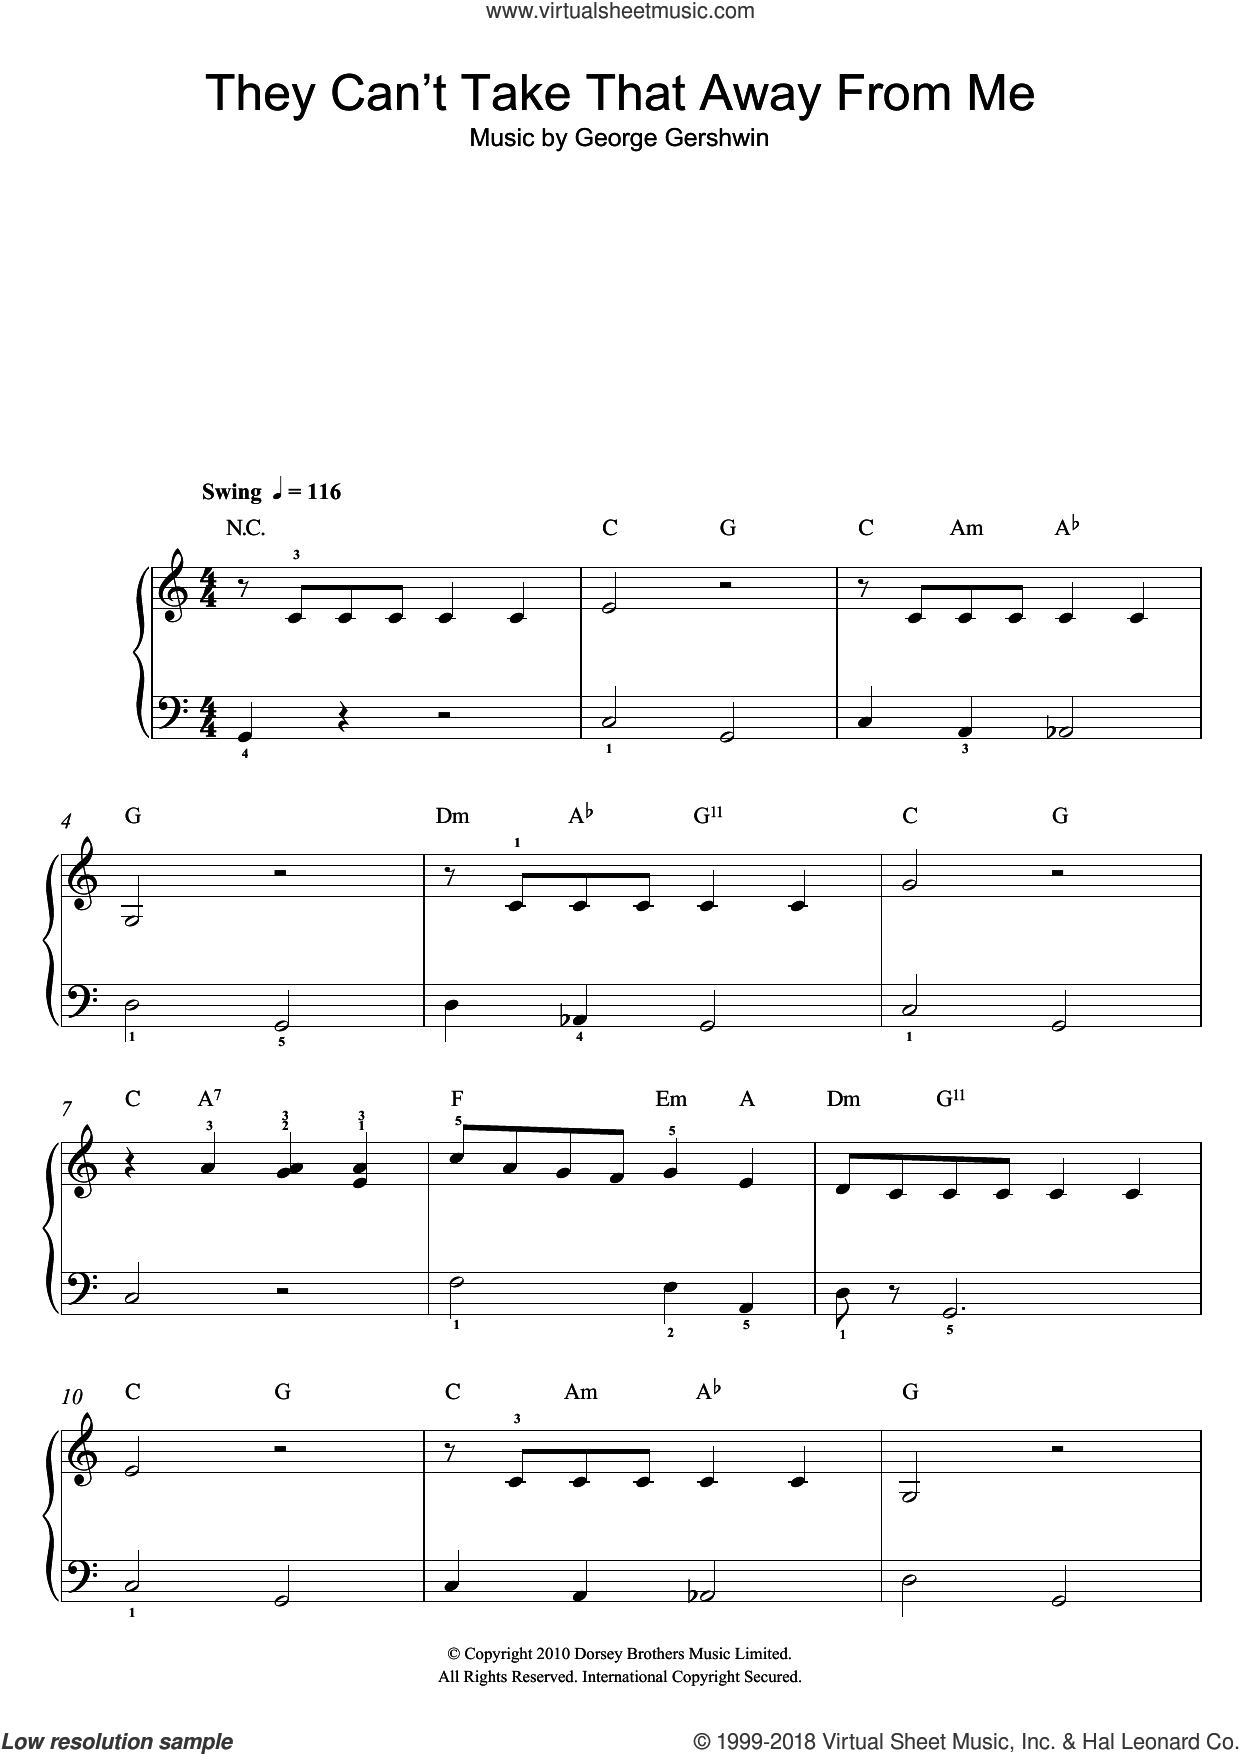 They Can't Take That Away From Me sheet music for piano solo by George Gershwin, easy. Score Image Preview.